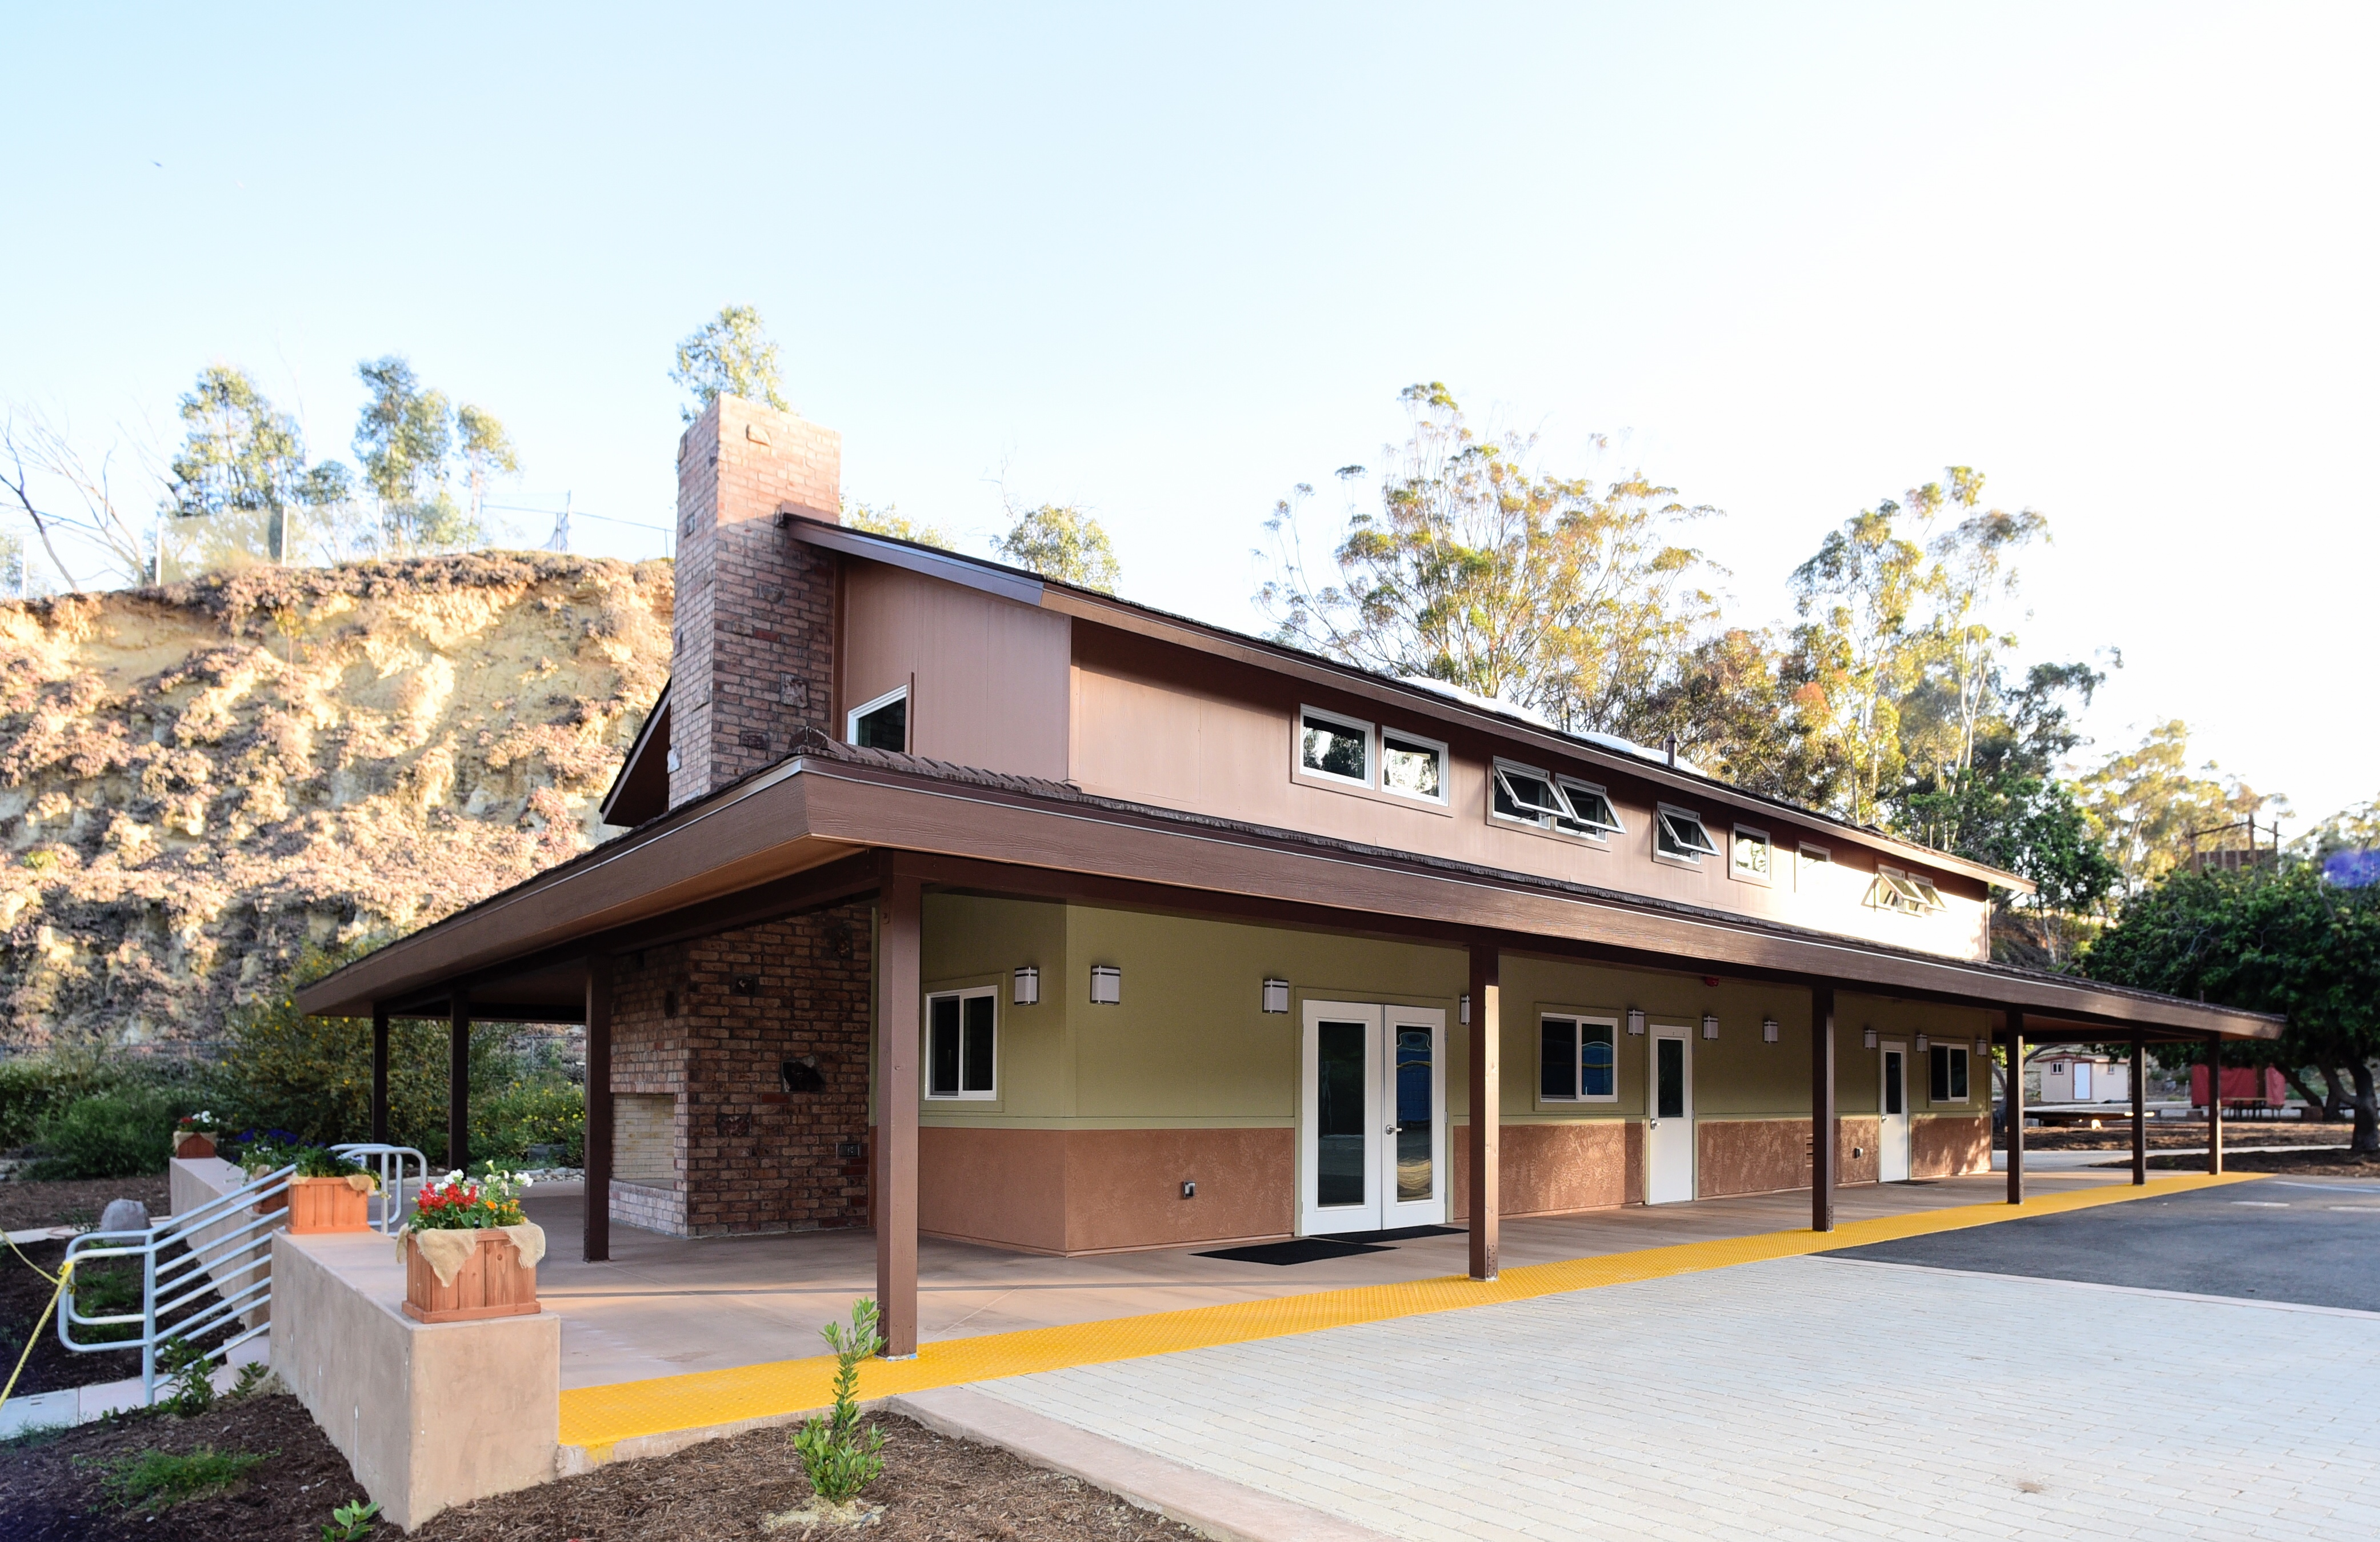 girl scouts celebrate new lodge in balboa park   times of